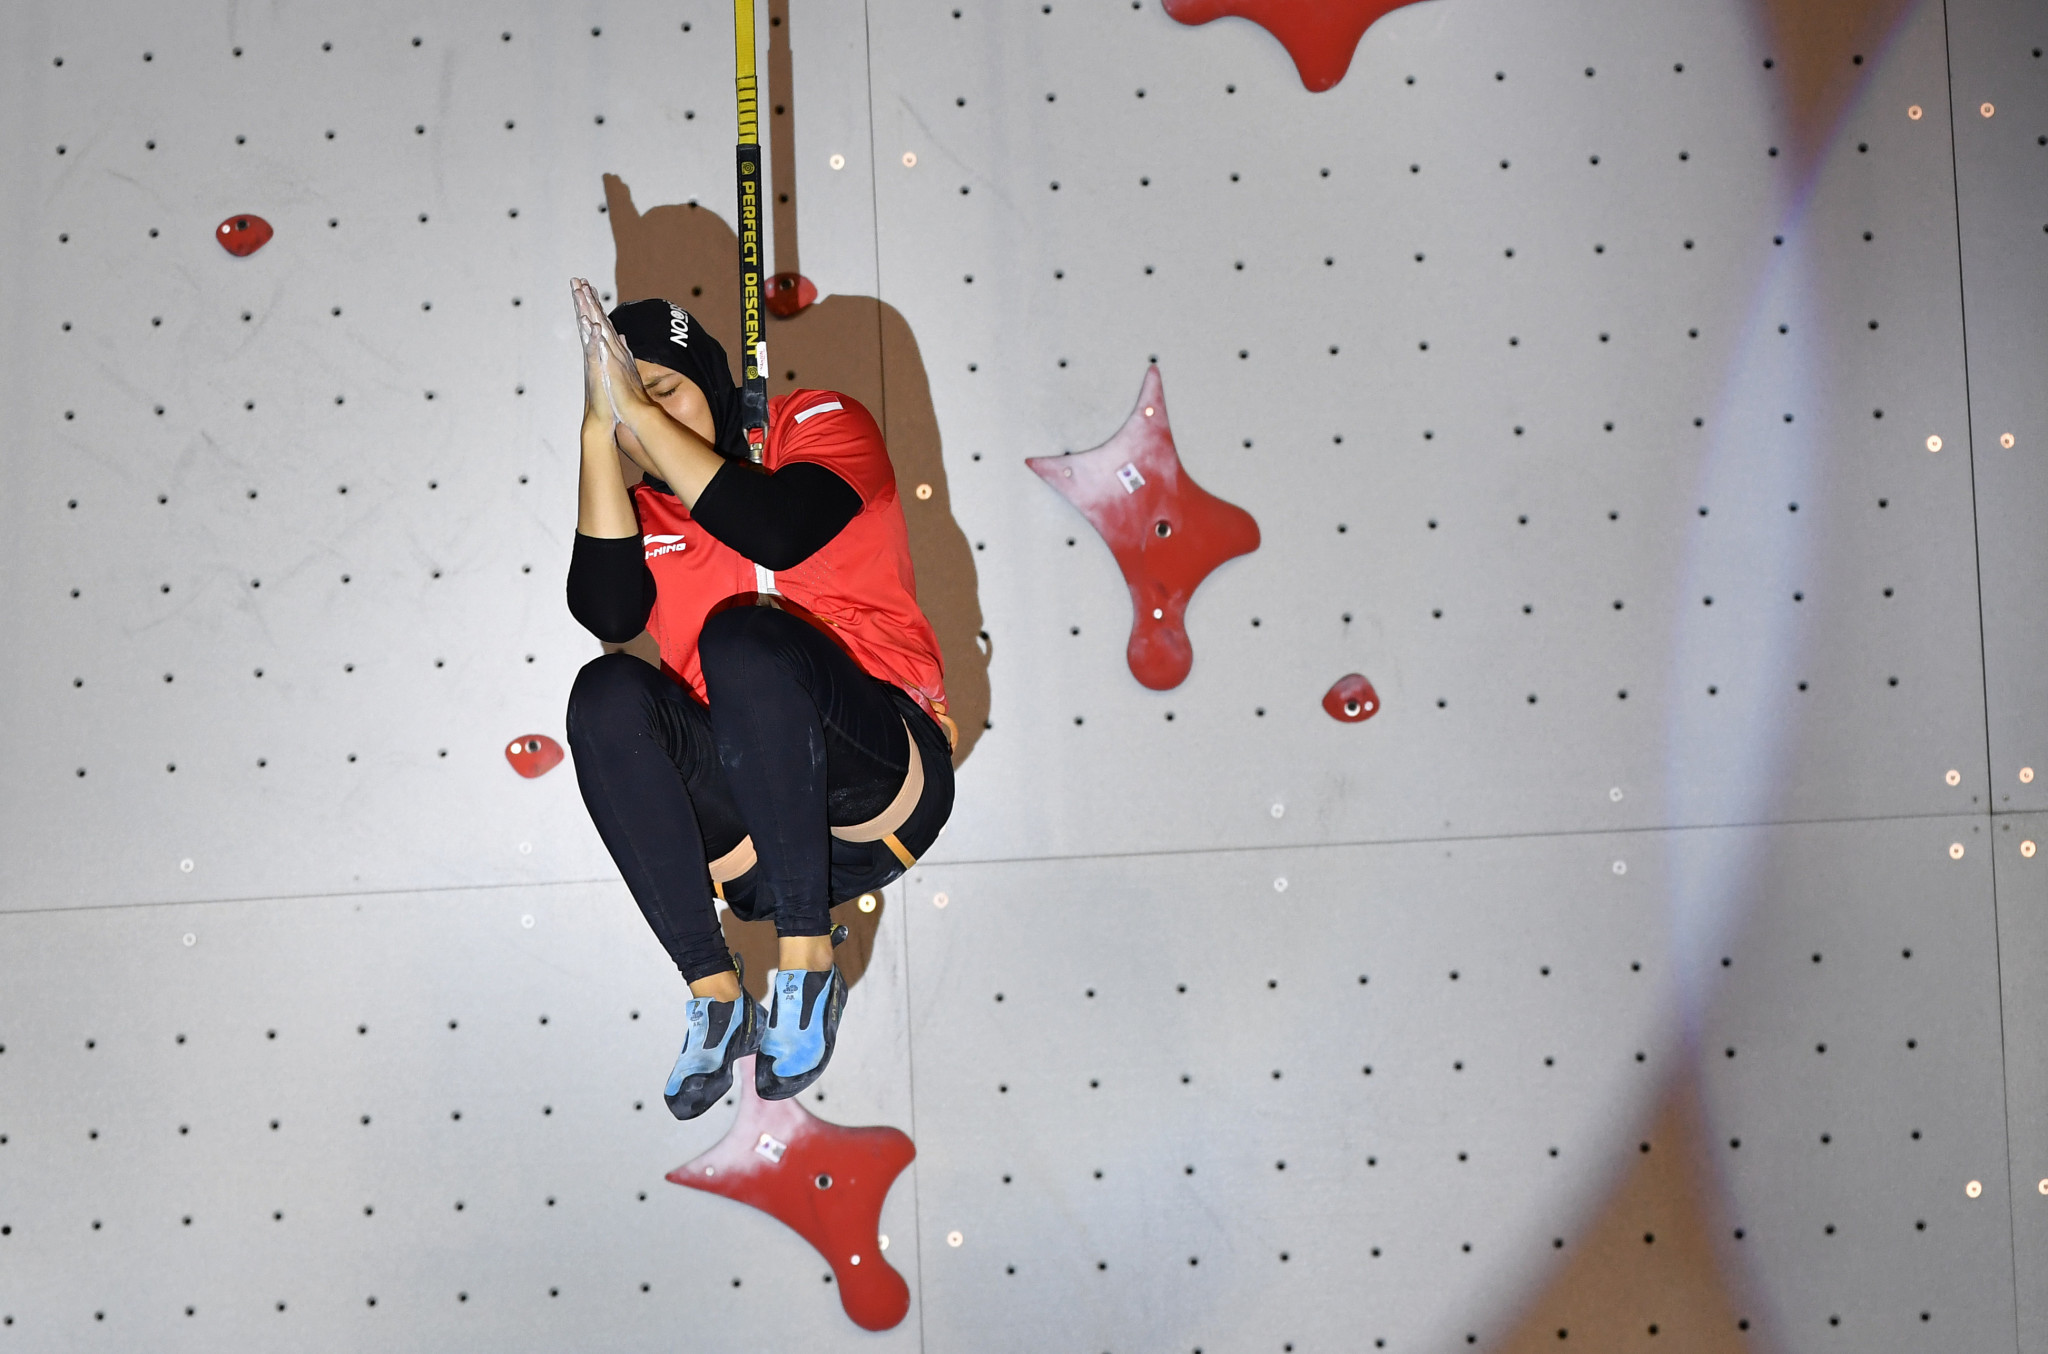 Indonesia won both the men's and women's speed relay finals in sport climbing ©Getty Images